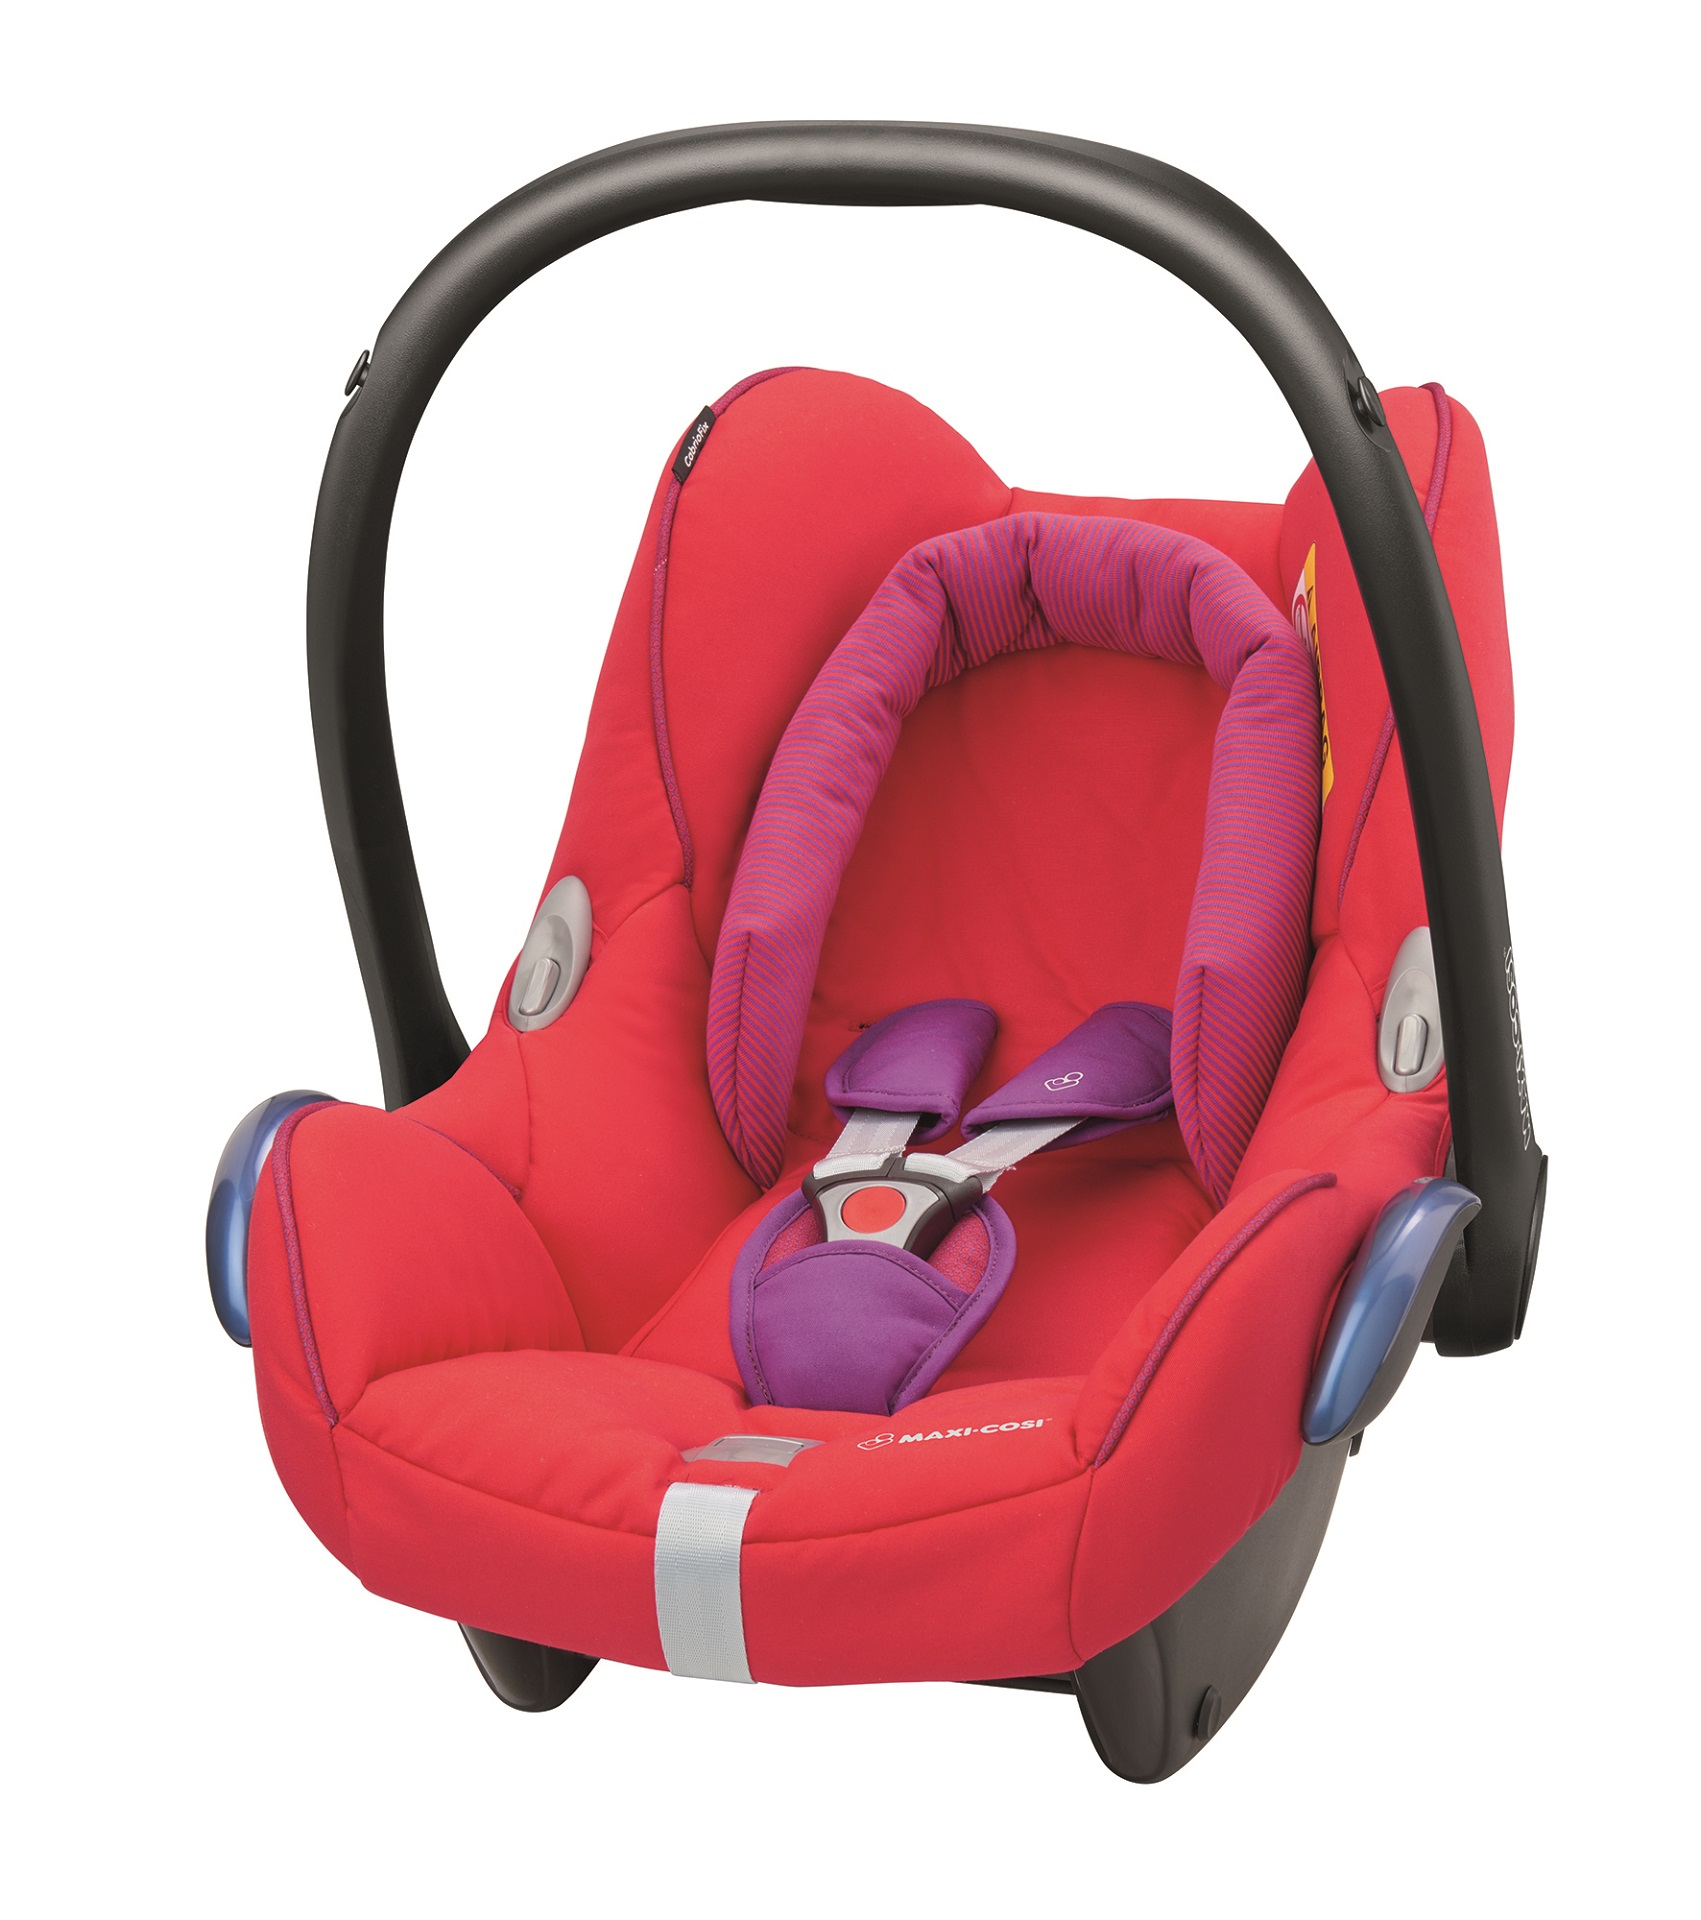 Maxi cosi infant carrier cabriofix 2017 red orchid buy for Housse maxi cosi cabriofix